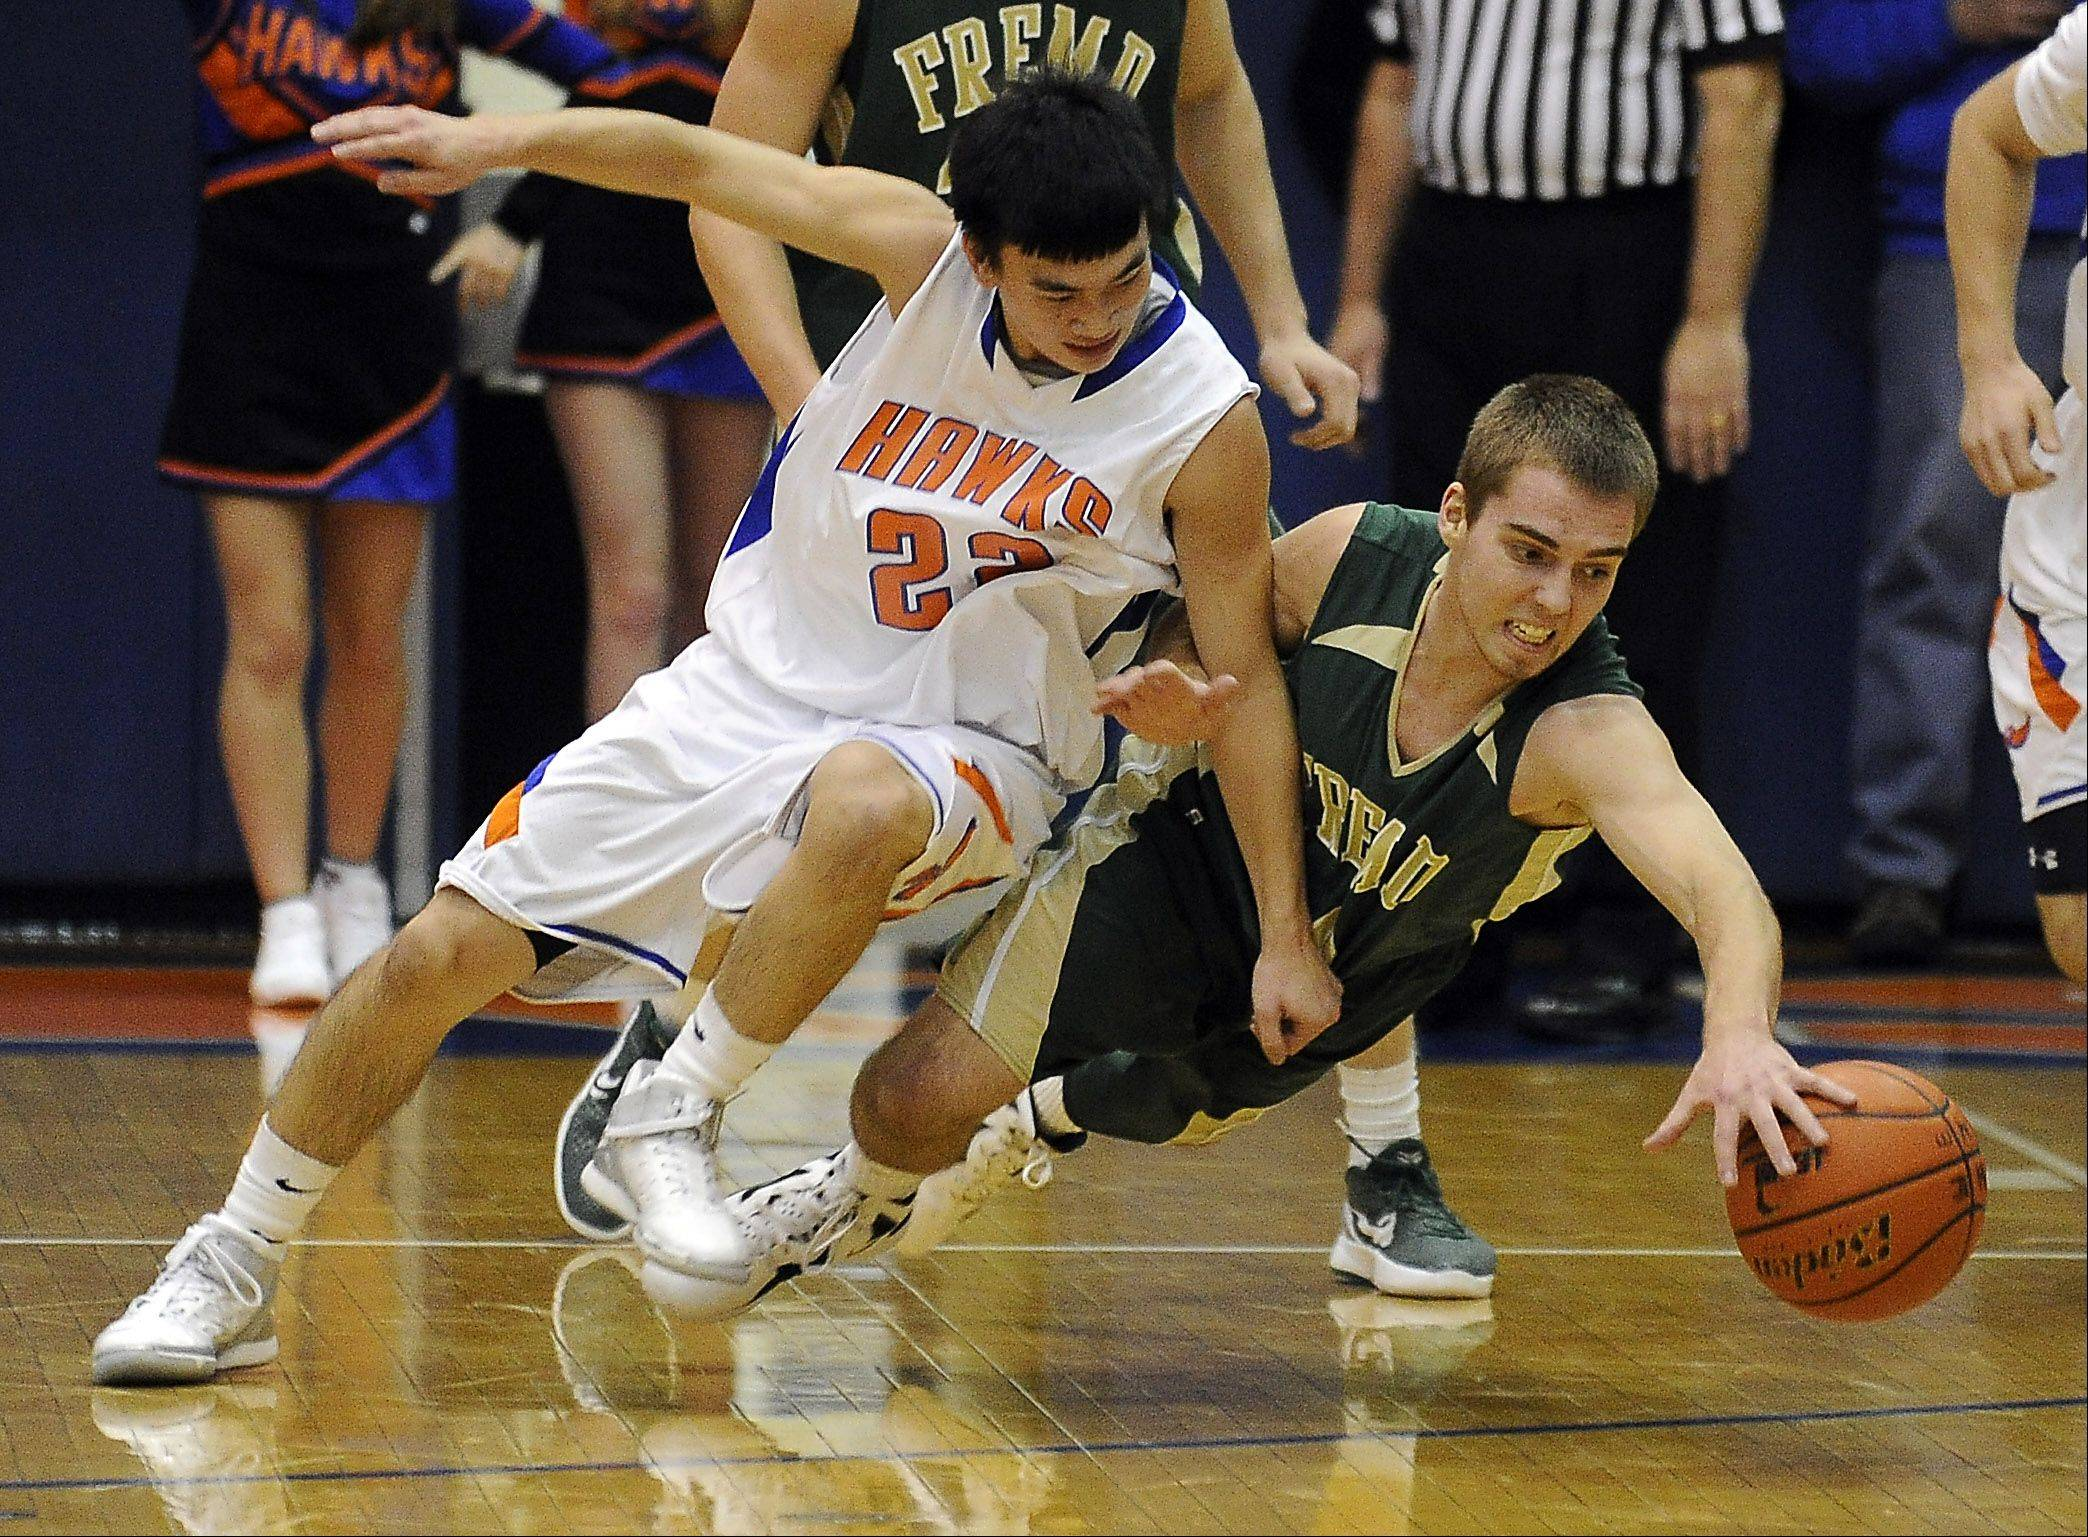 Hoffman Estates' Takuro Azumaya battles Fremd's Jack Nelson for control during Friday's basketball game in Hoffman Estates.